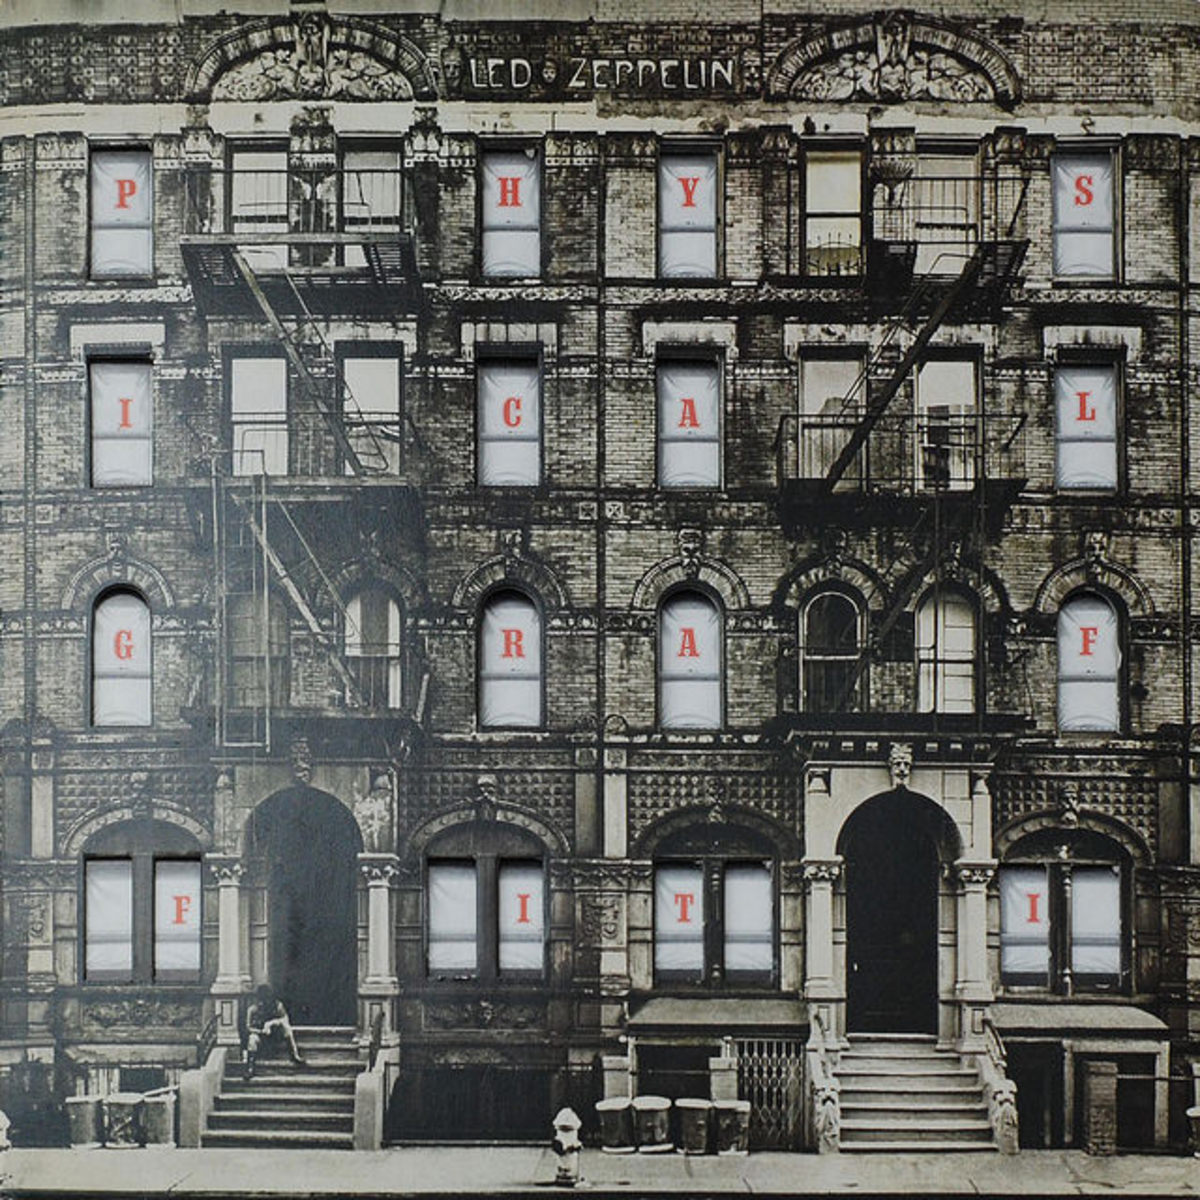 "Led Zeppelin ‎""Physical Graffiti"" Swan Song Records	SSK 89400 2-12"" LP Vinyl Record Set,	UK Pressing	(1975)"